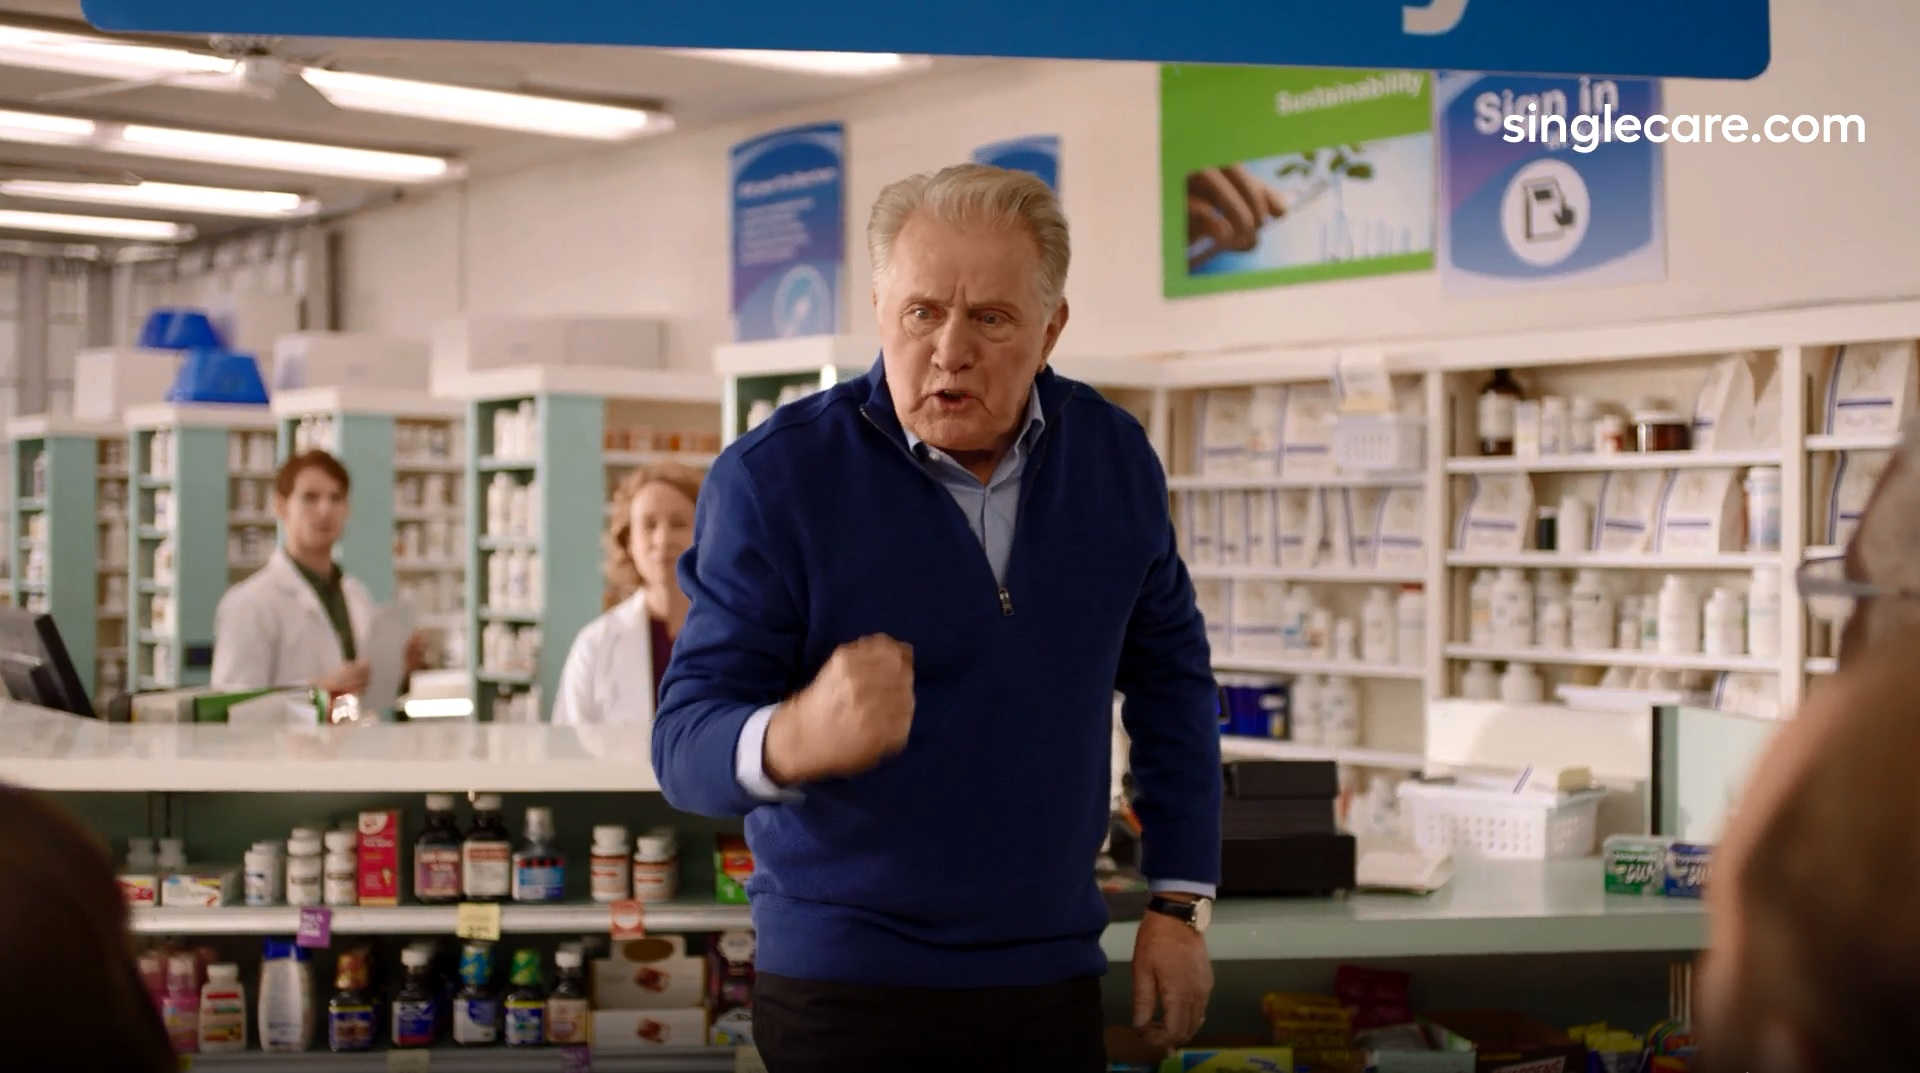 Watch: Martin Sheen rants about drug prices in SingleCare ad